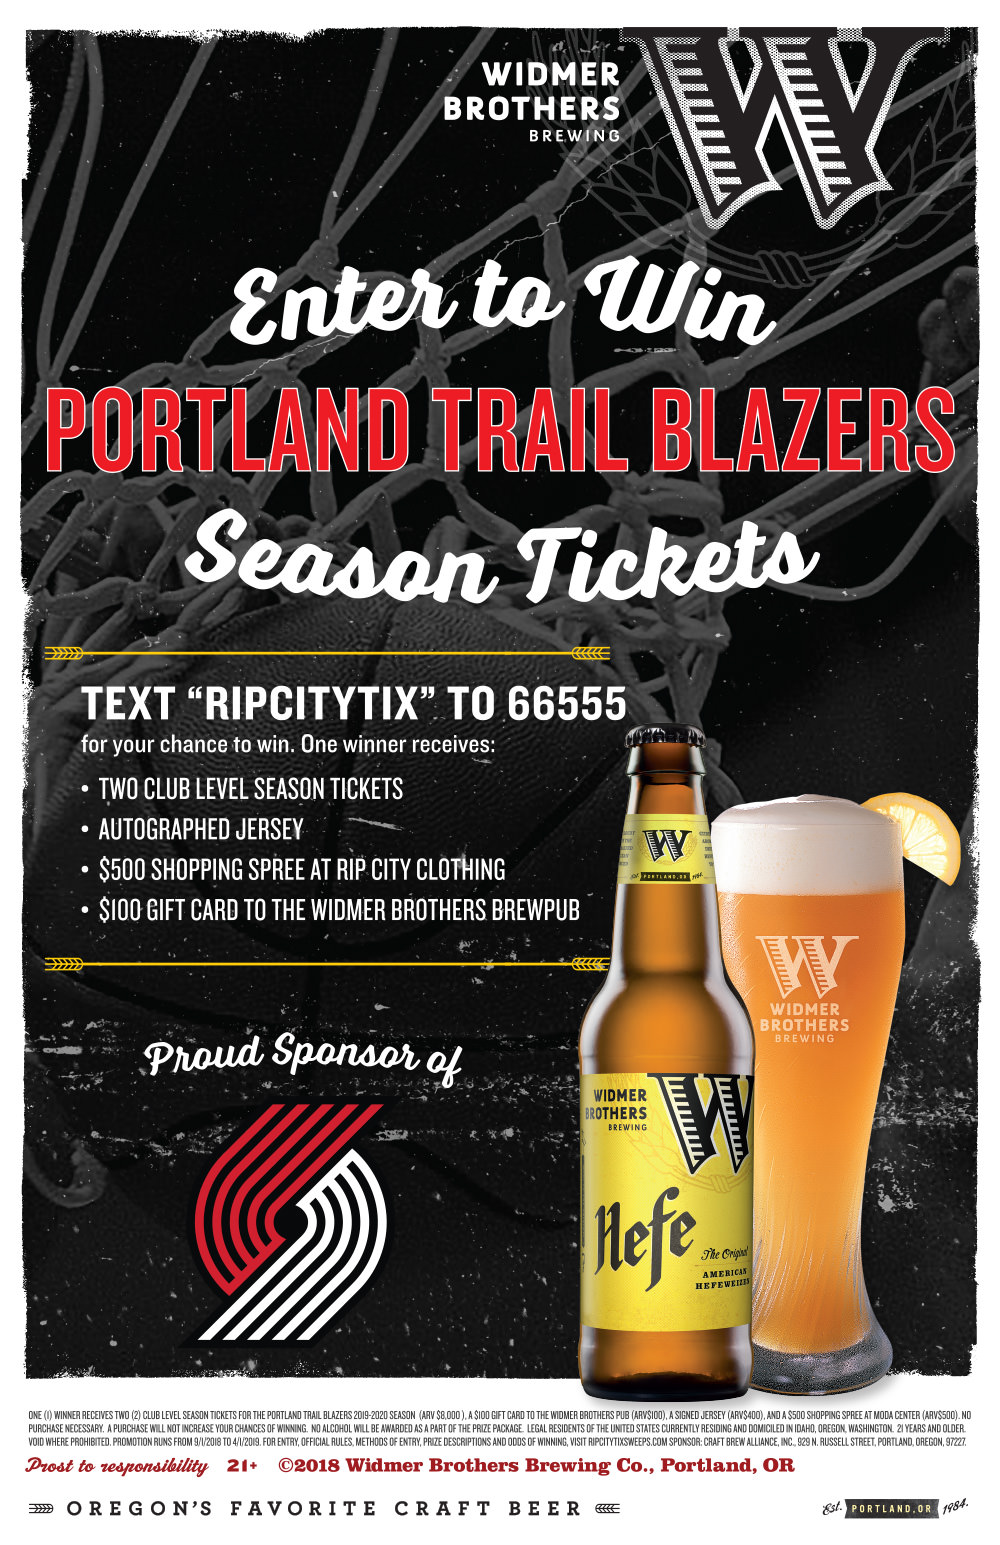 Widmer Brothers Brewery Sweepstakes | RIPCITY